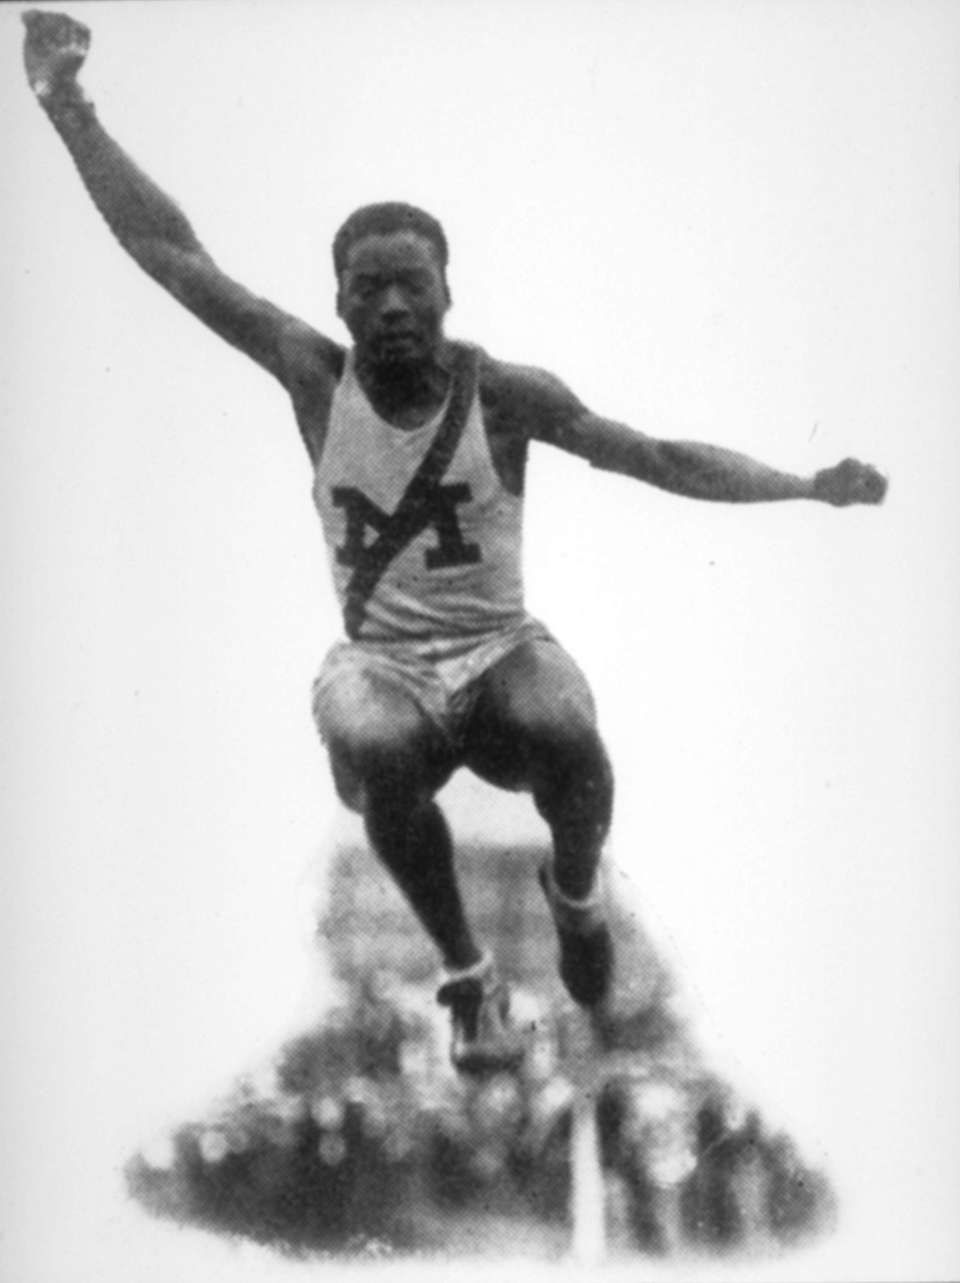 In the 1924 Olympic Games in Paris, Hubbard